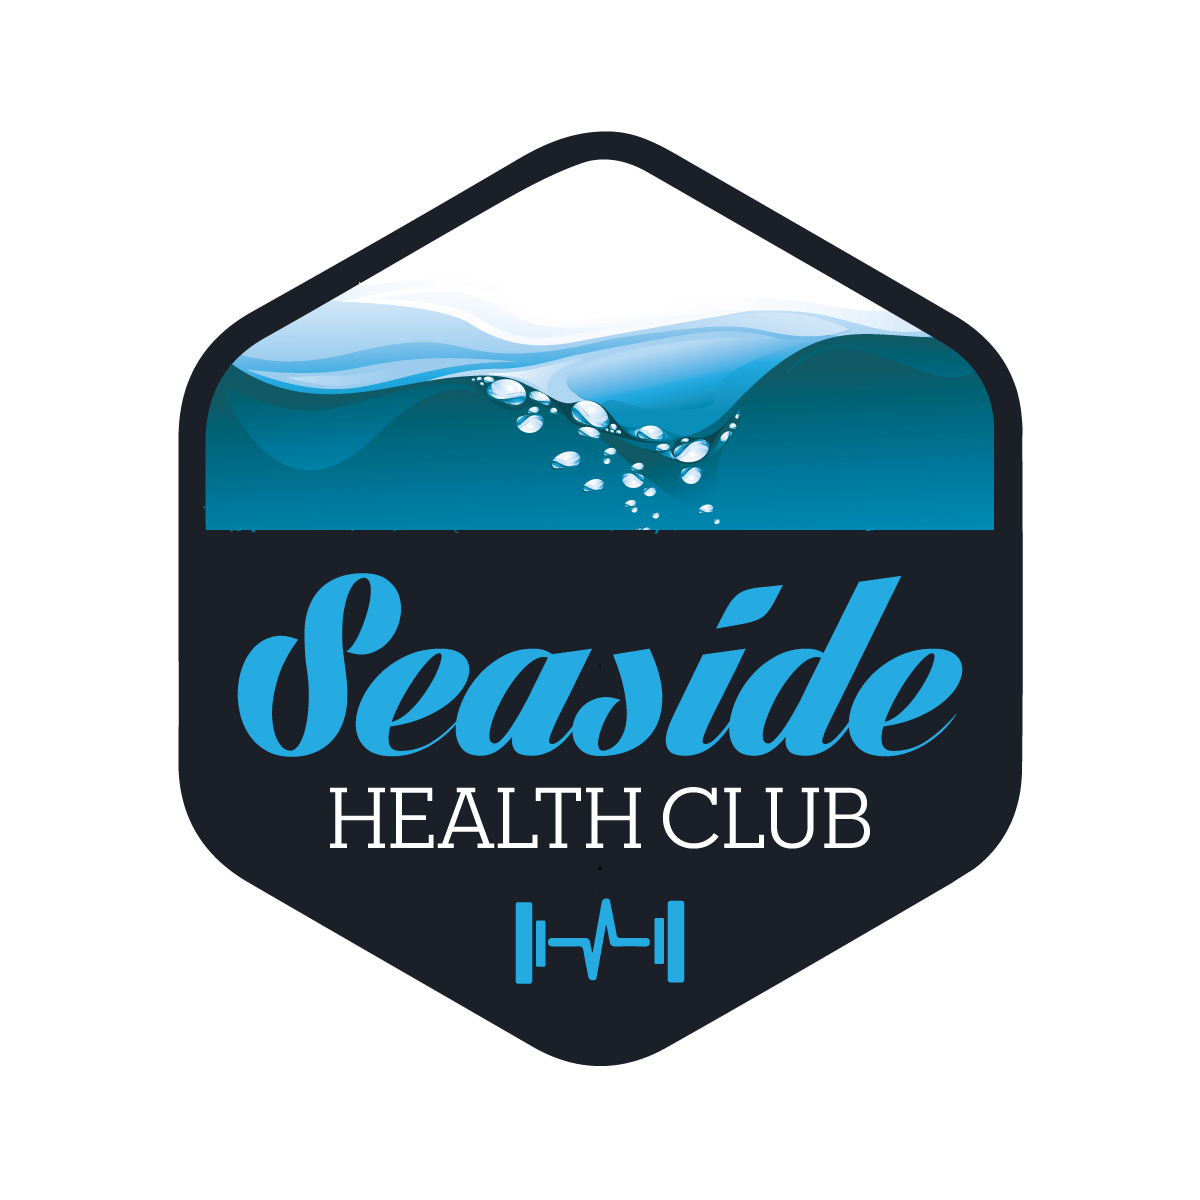 Seaside Health Club Merimbula